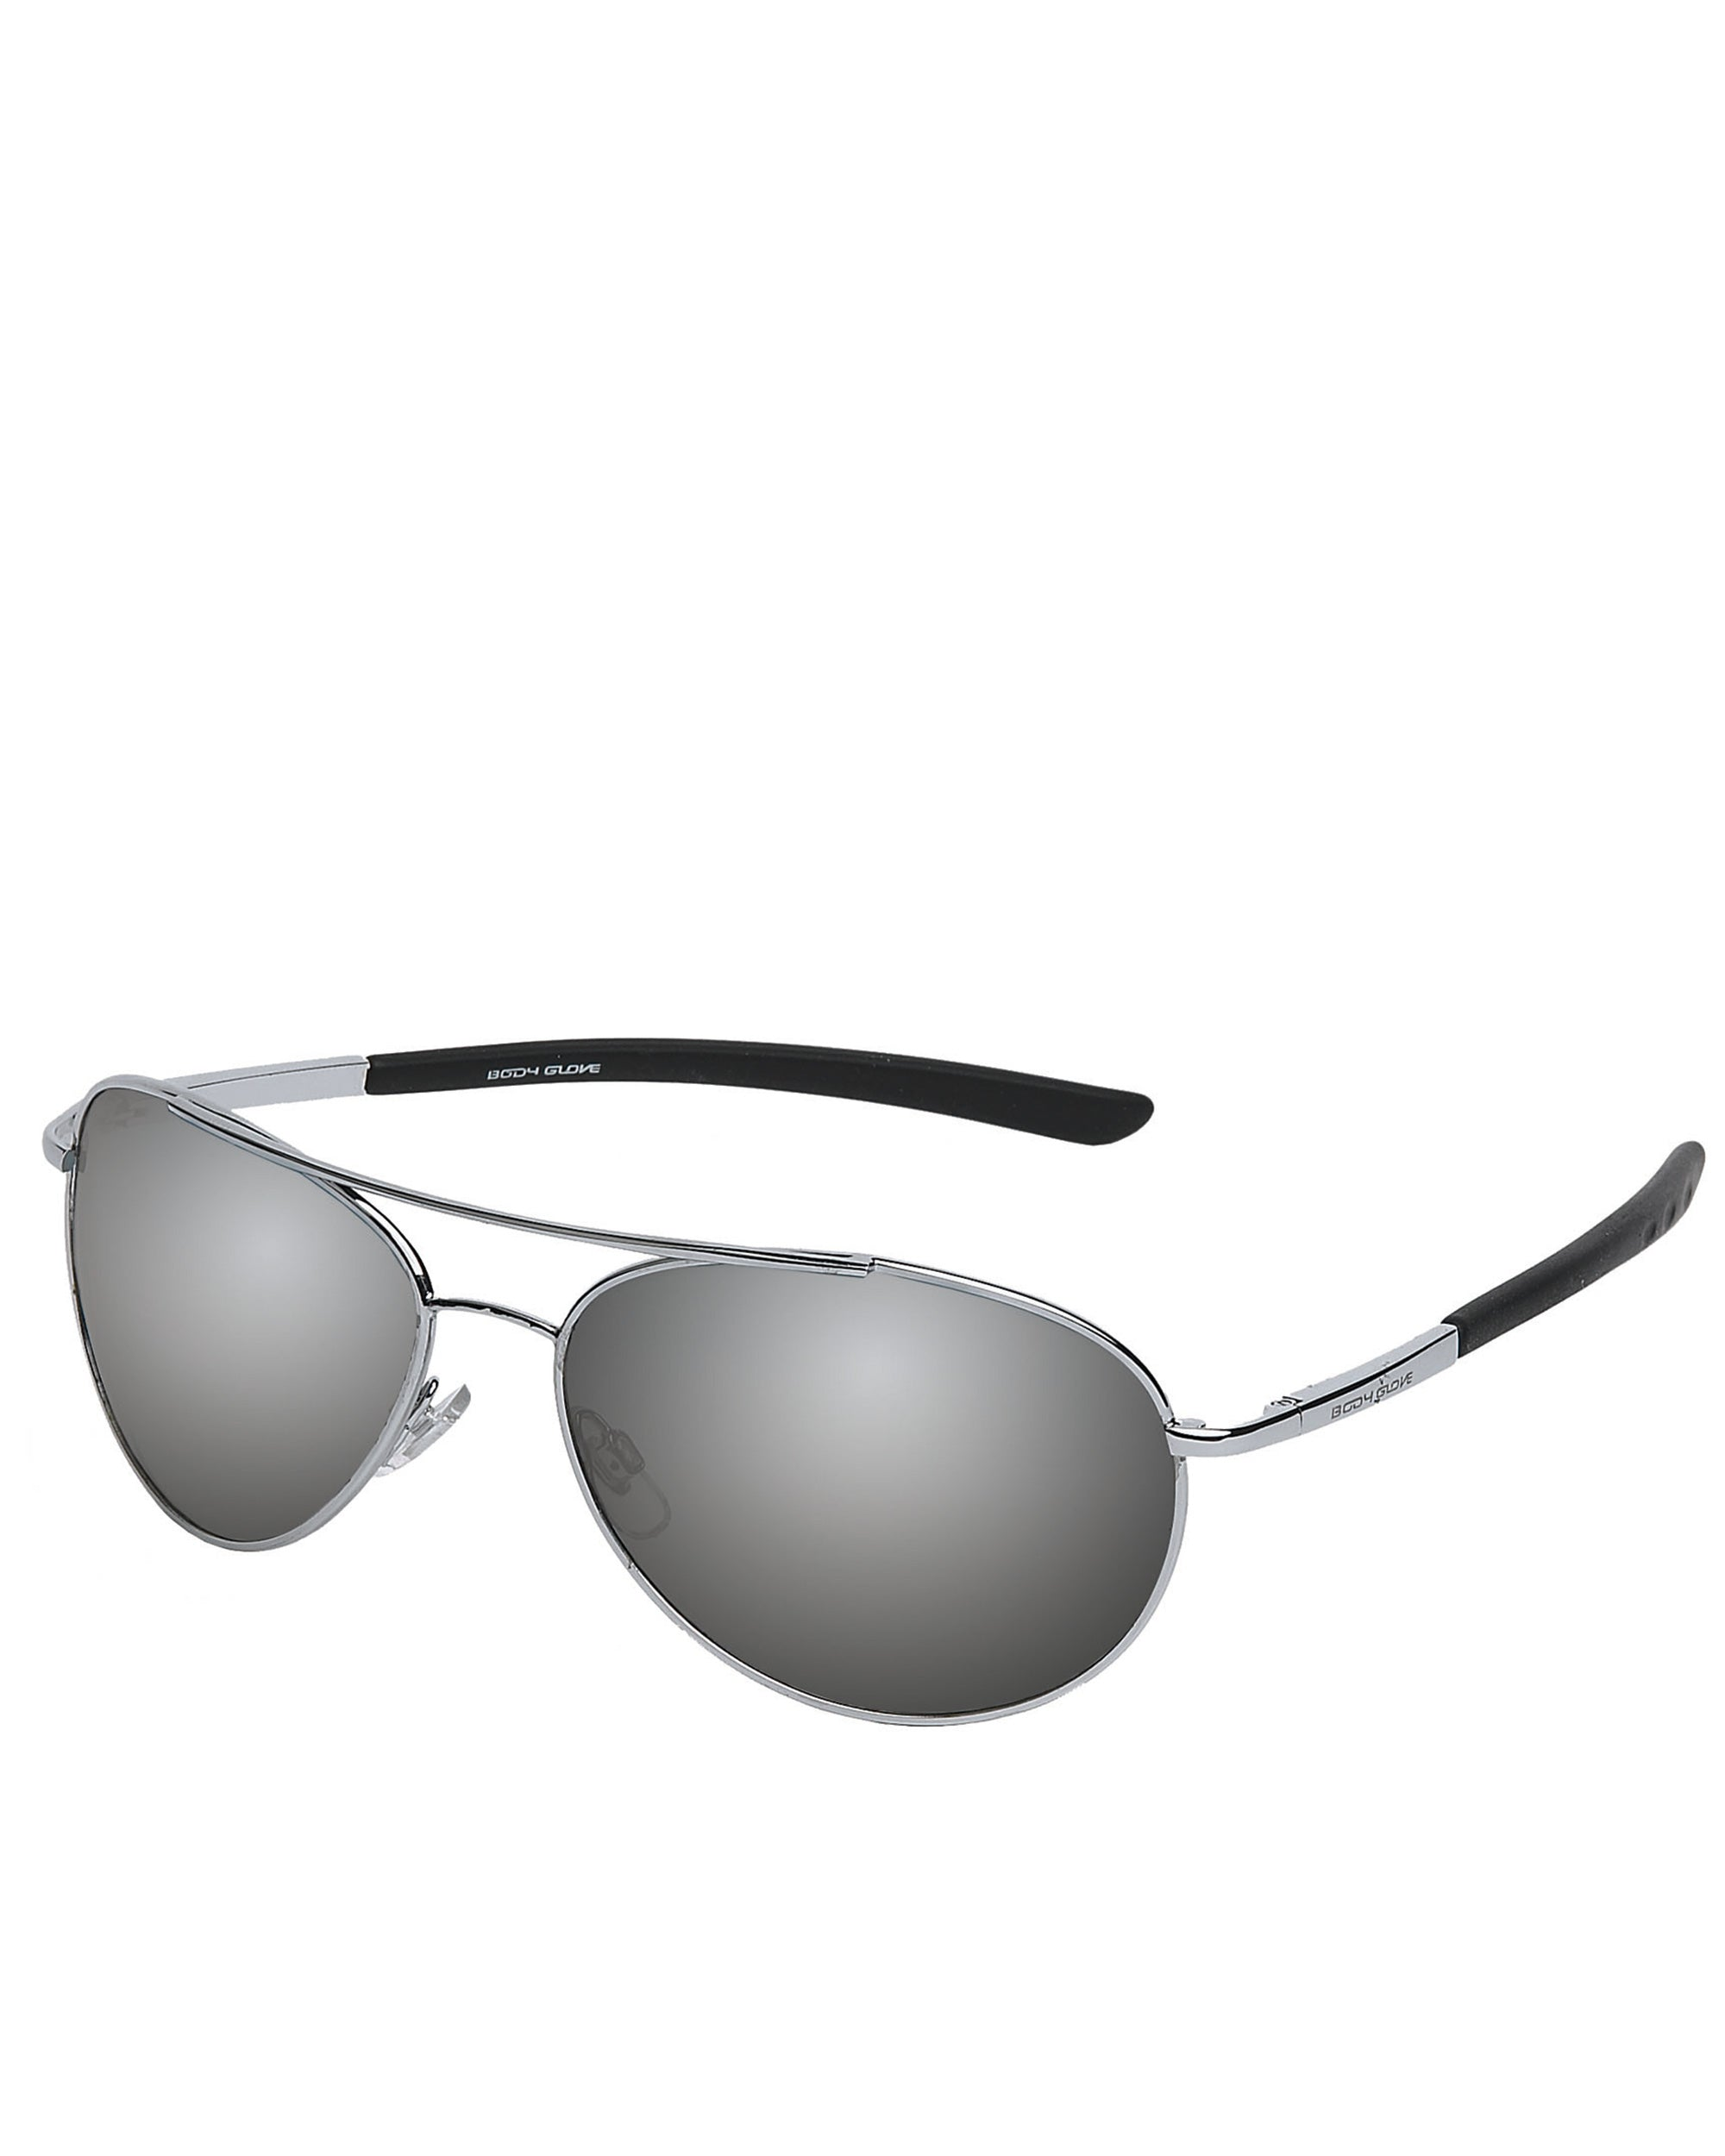 Men's Oahu Polarized Sunglasses - Silver